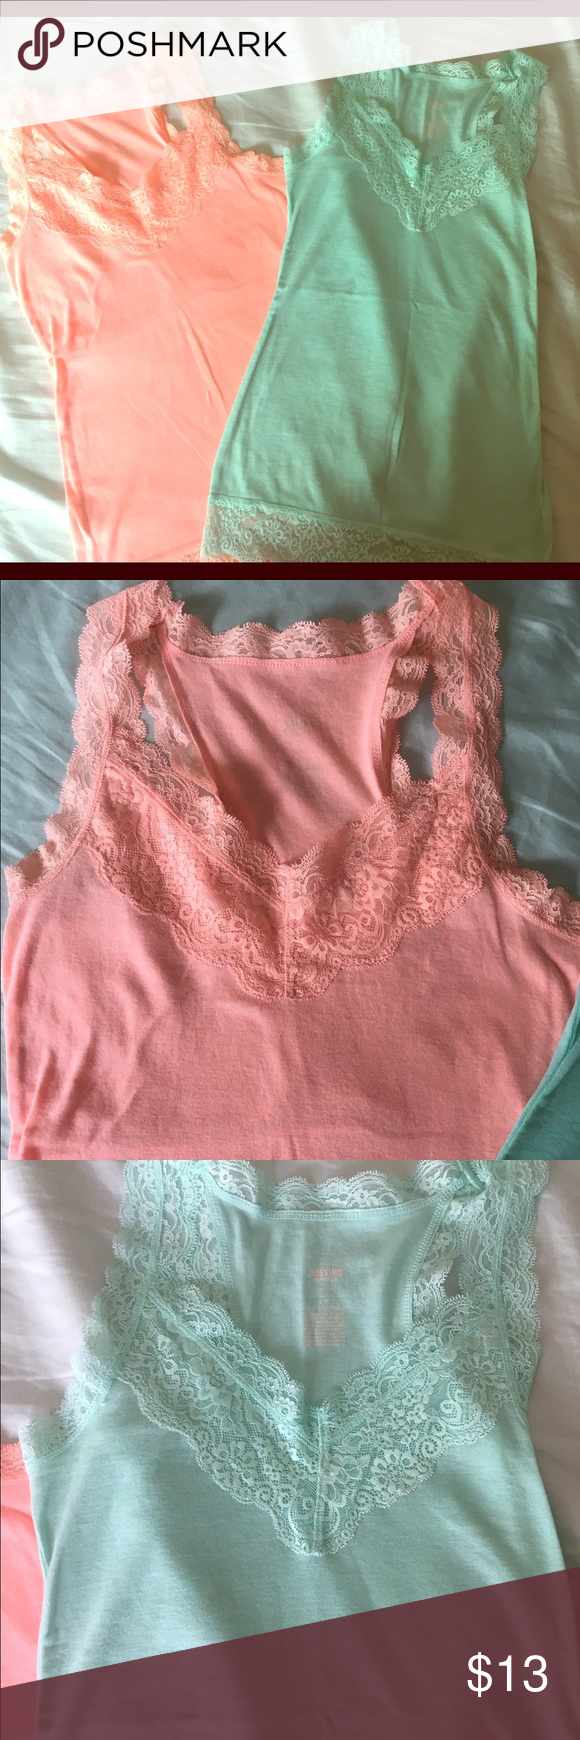 Two Racerback Lace Tank Tops These are two super cute racerback tank tops with lace around the edges. They are coral/peach and a seafoam green color. They have never been worn but do not have the tags. Mossimo Supply Co Tops Tank Tops